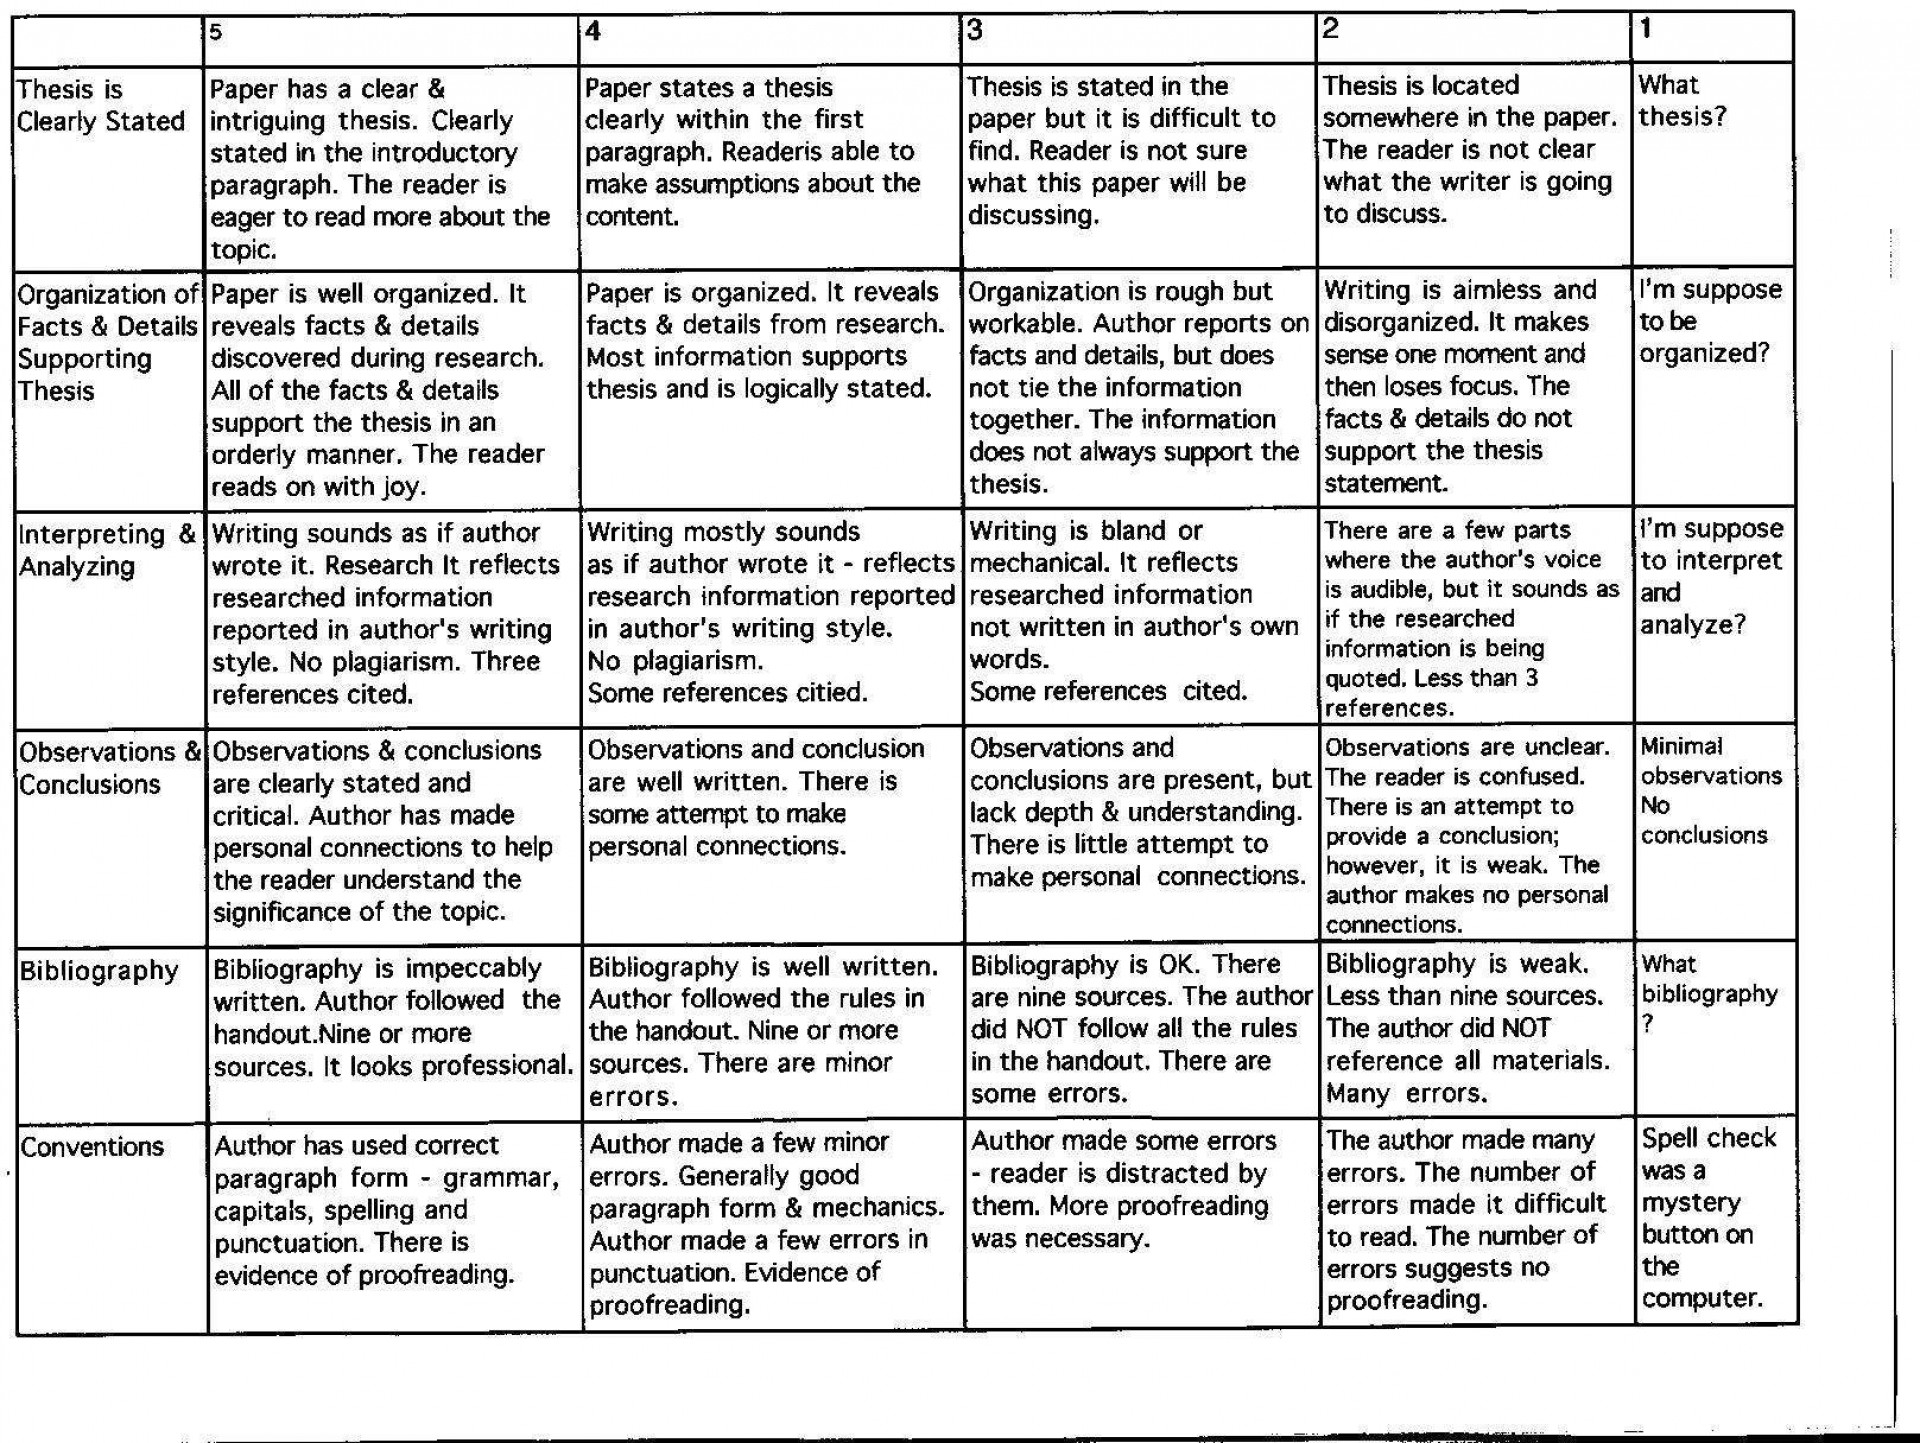 004 Research Paper High School Physics Unforgettable Rubric 1920